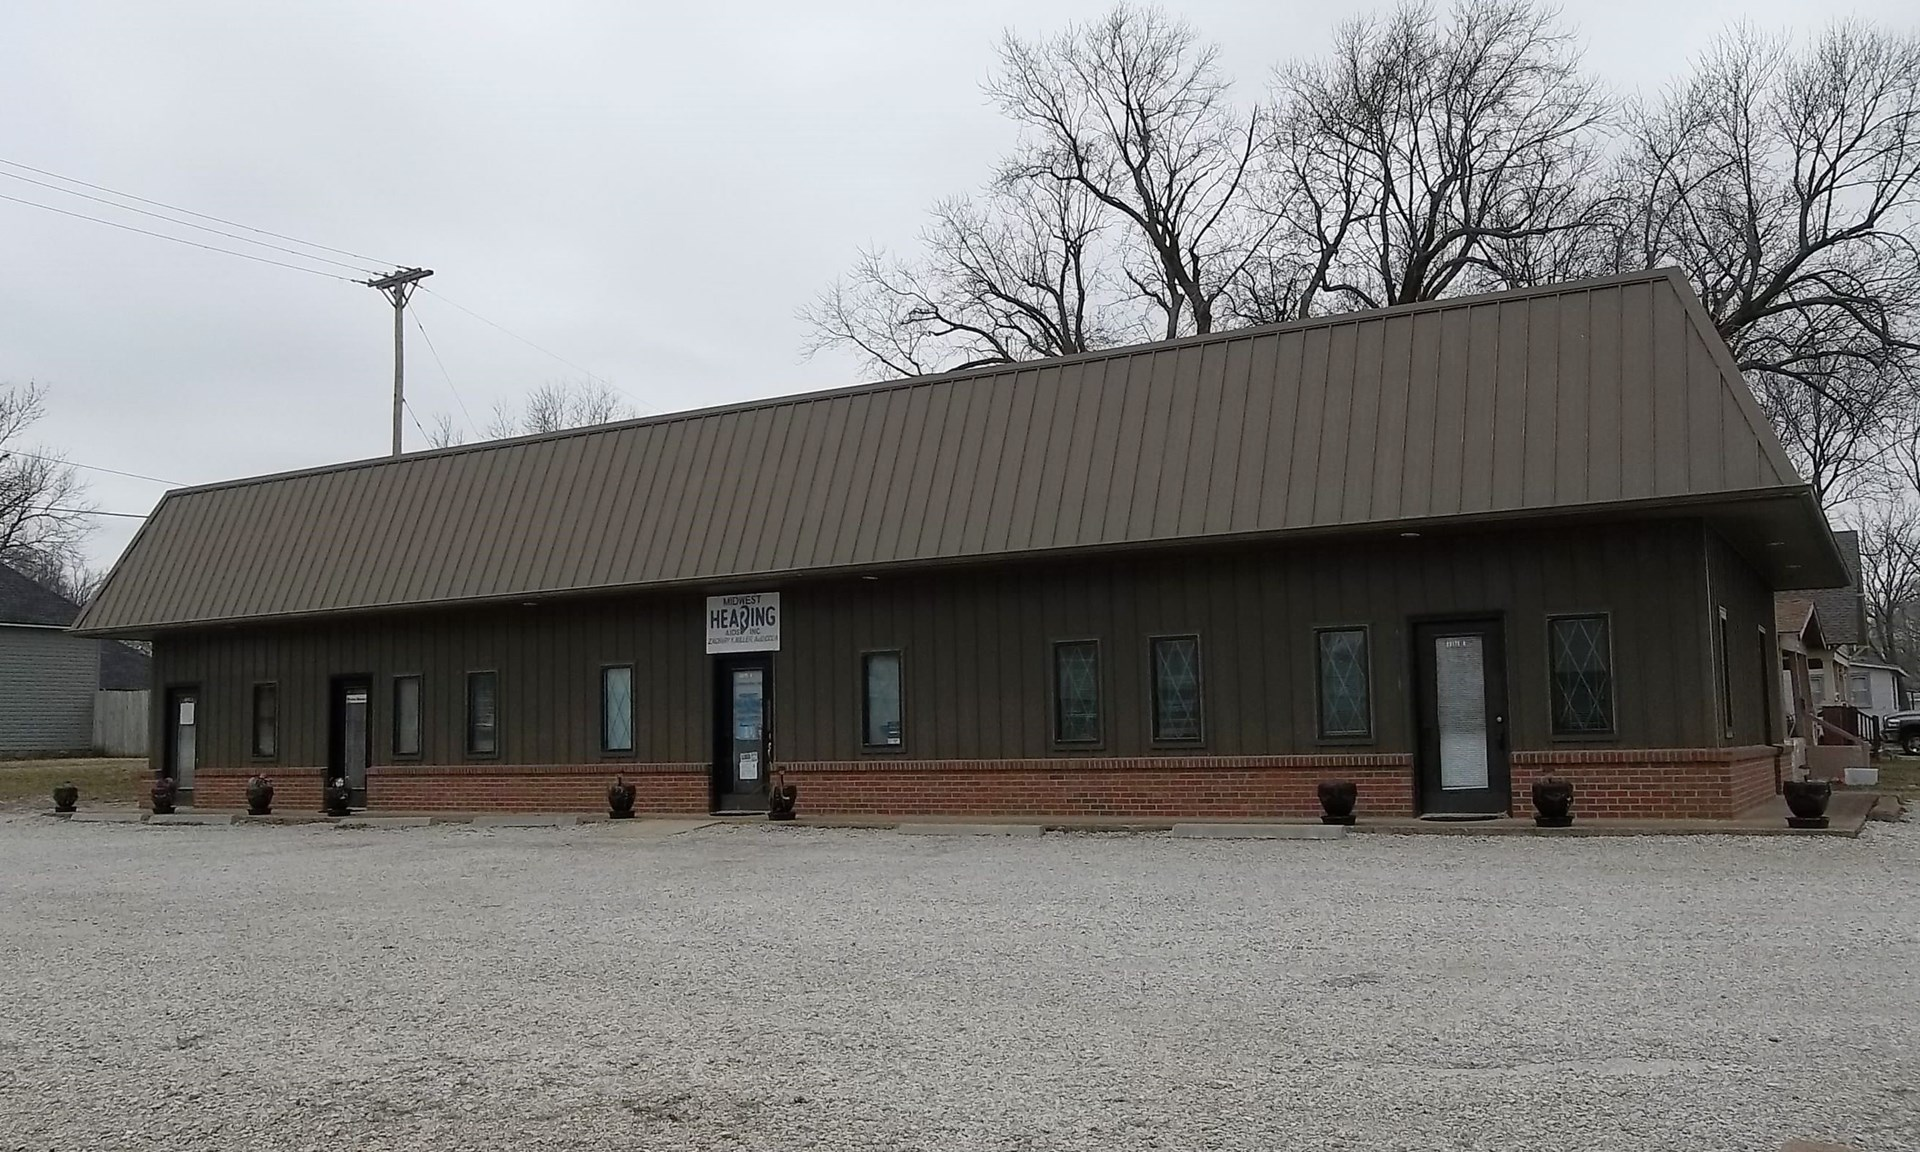 Commercial property for sale in Chanute KS